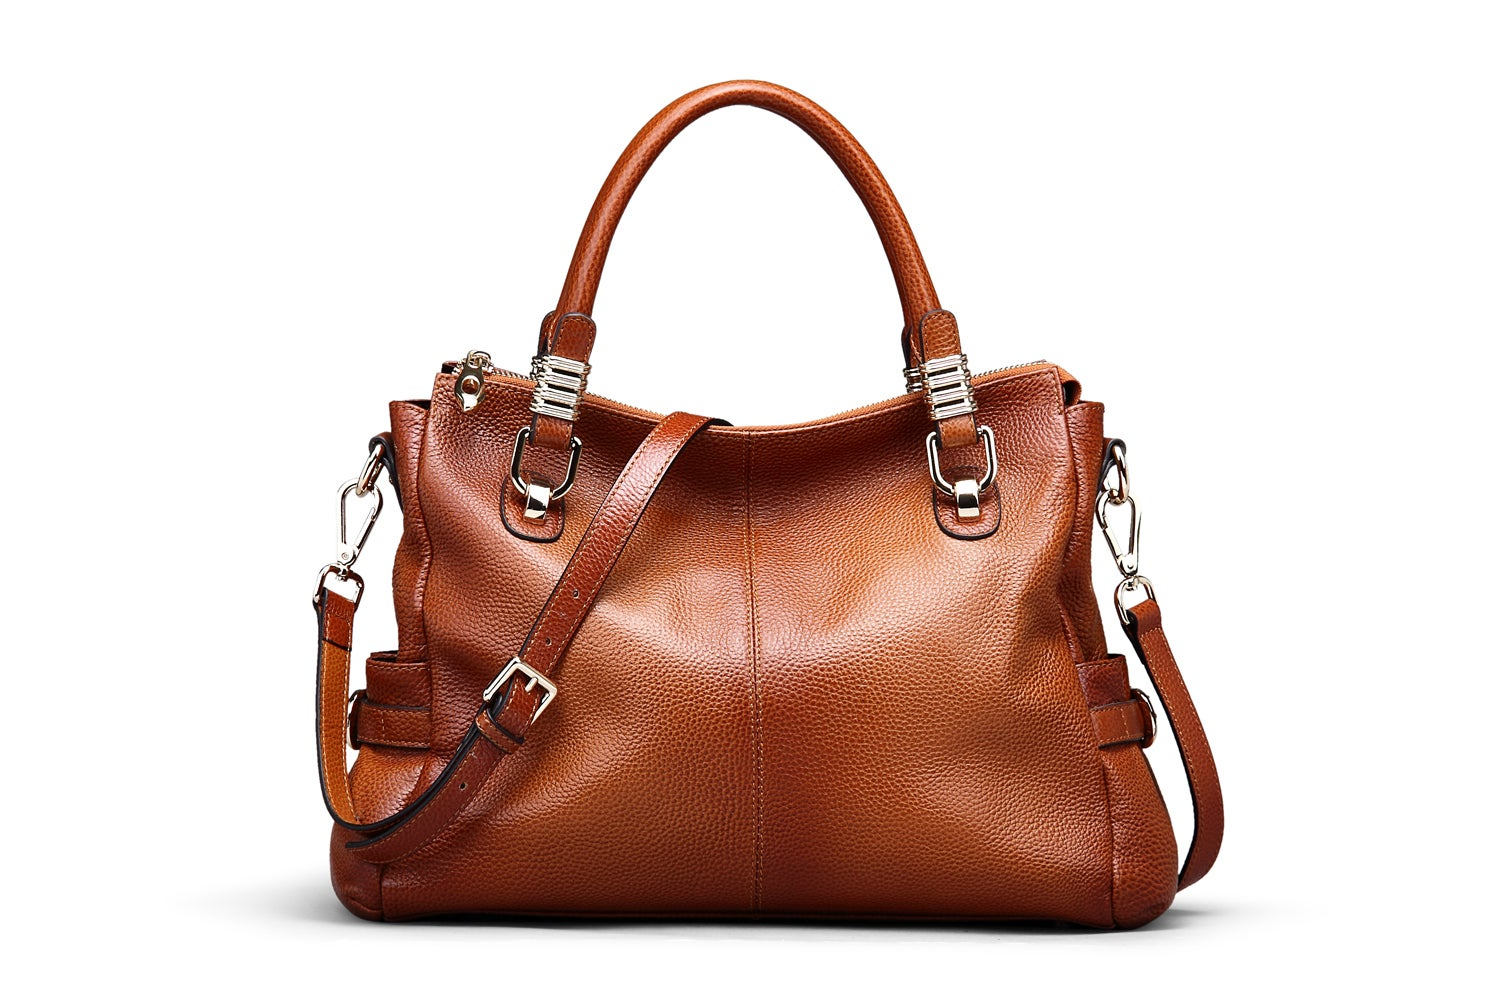 5 Colors Women Full Grain Leather Vintage Tote Shoulder Bag Top Handle Crossbody Handbags Sl9333